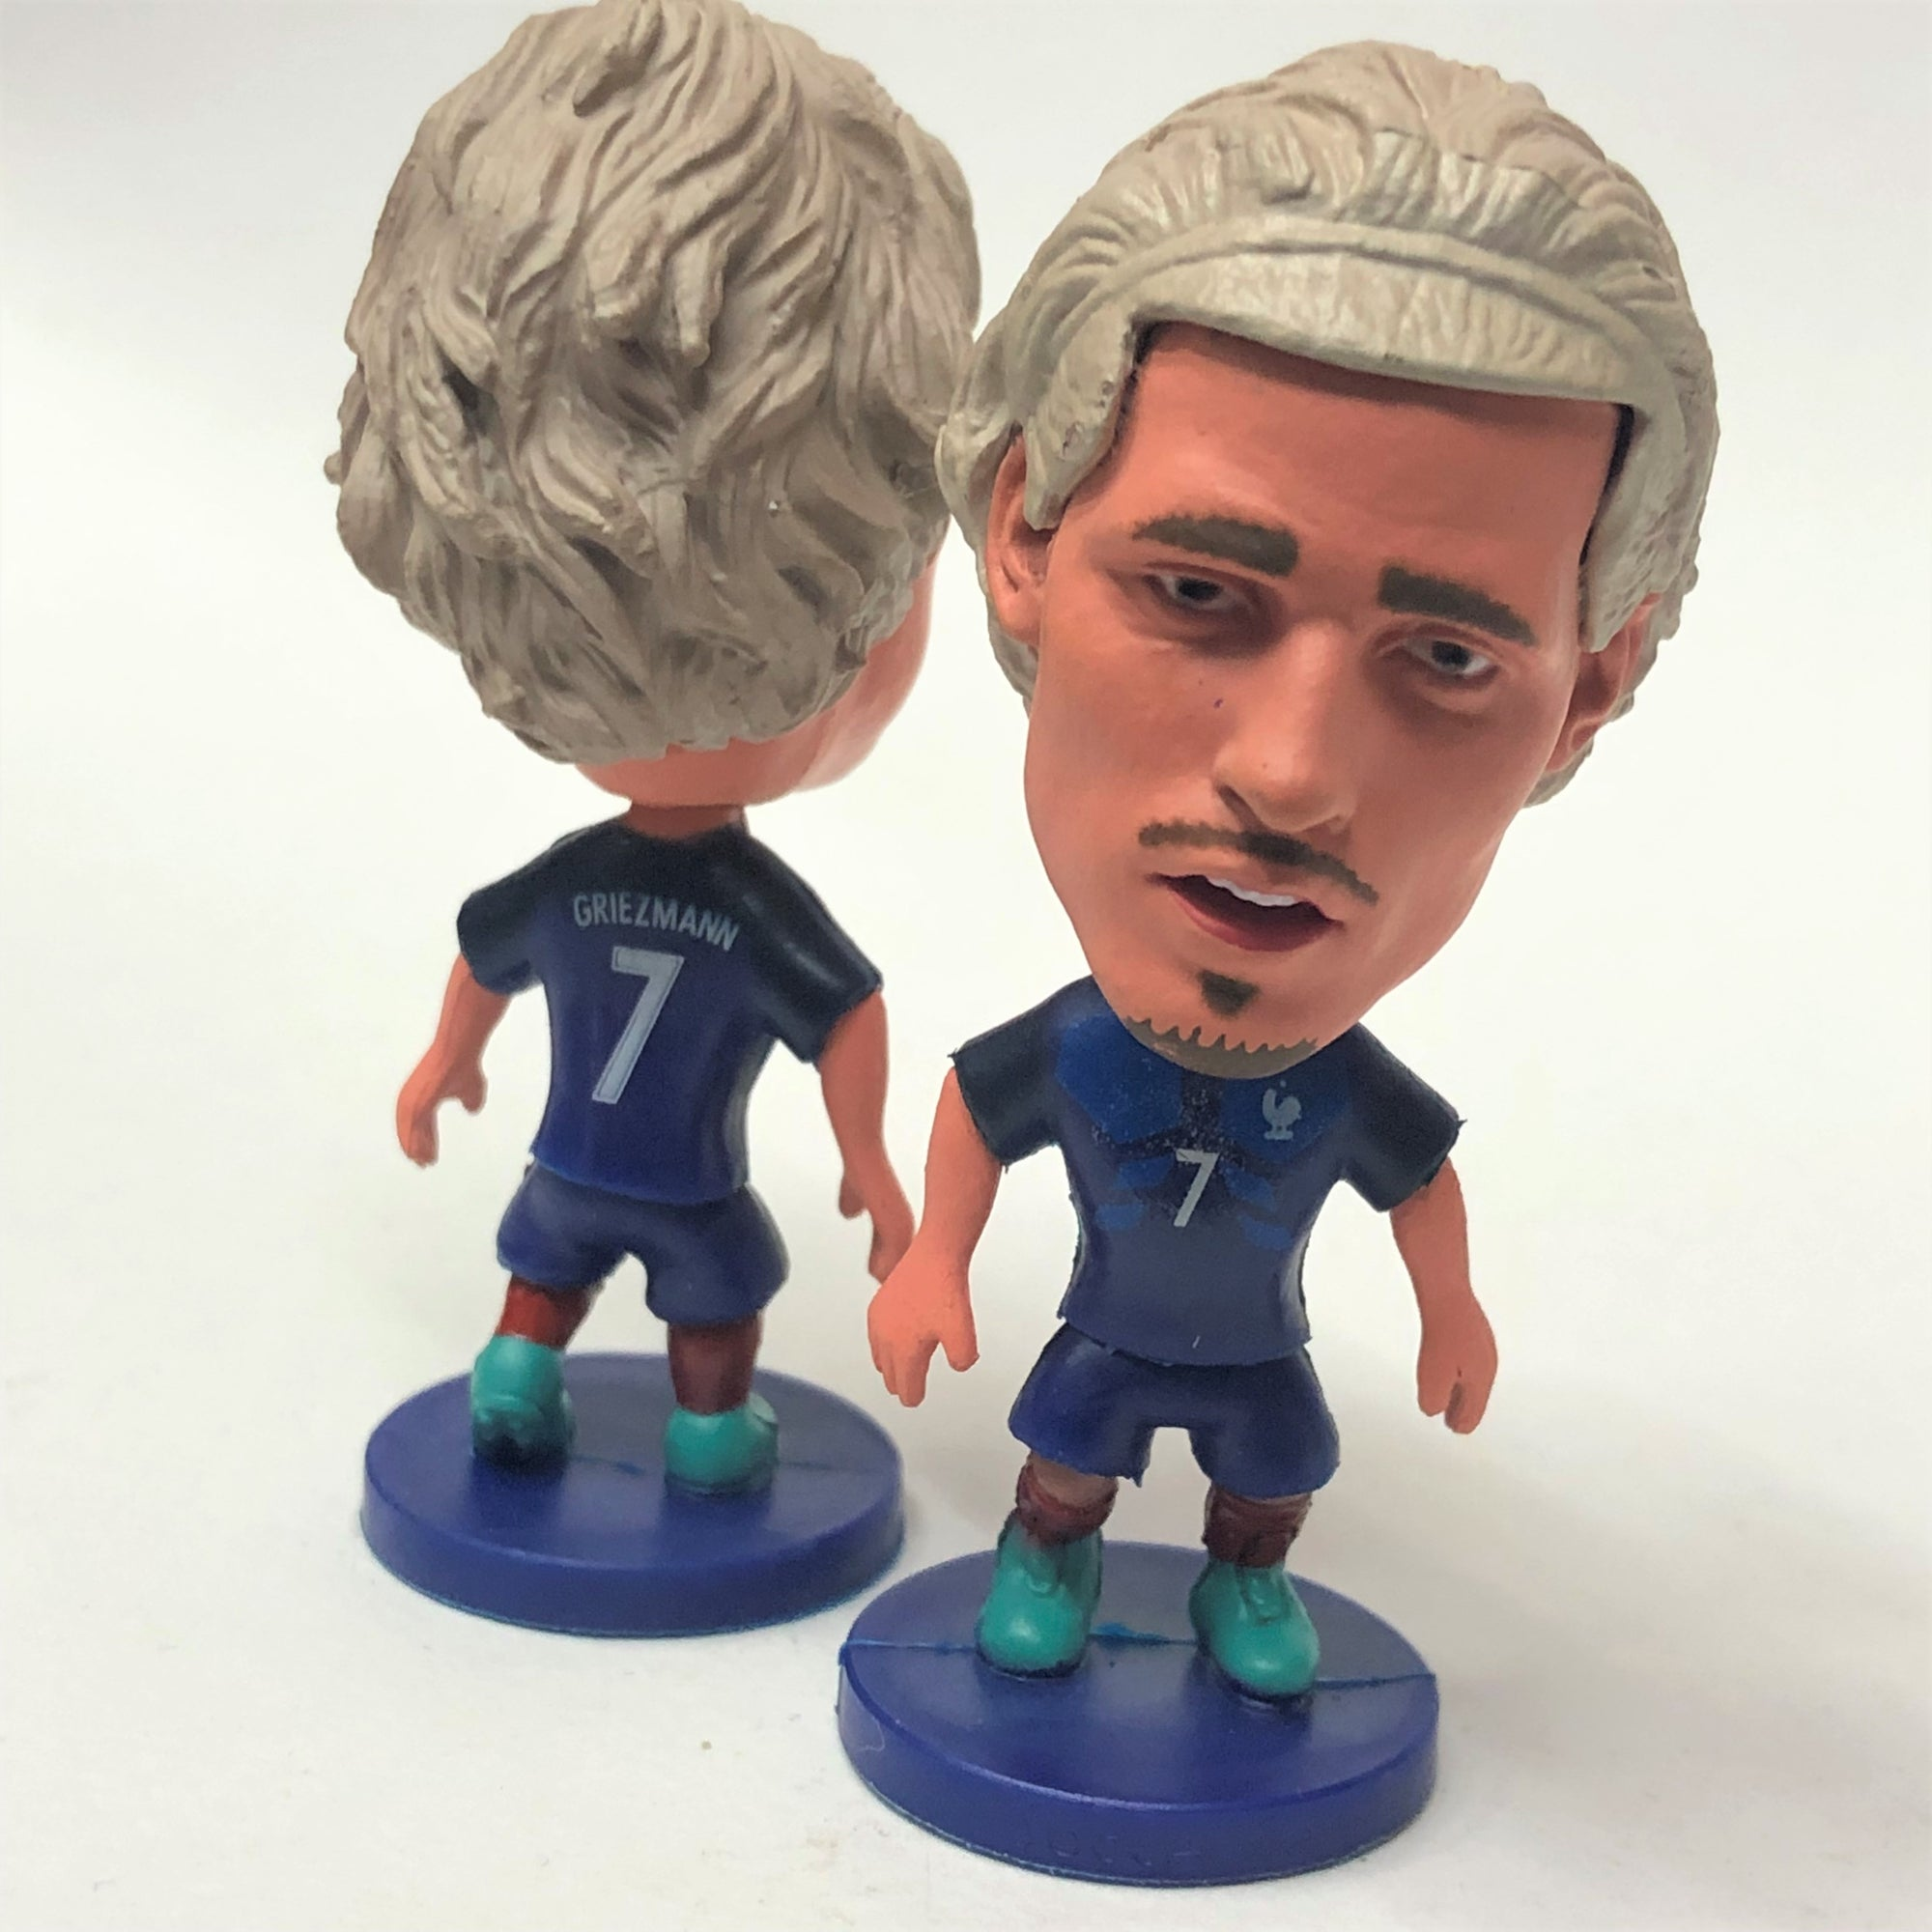 Griezmann France Figurine